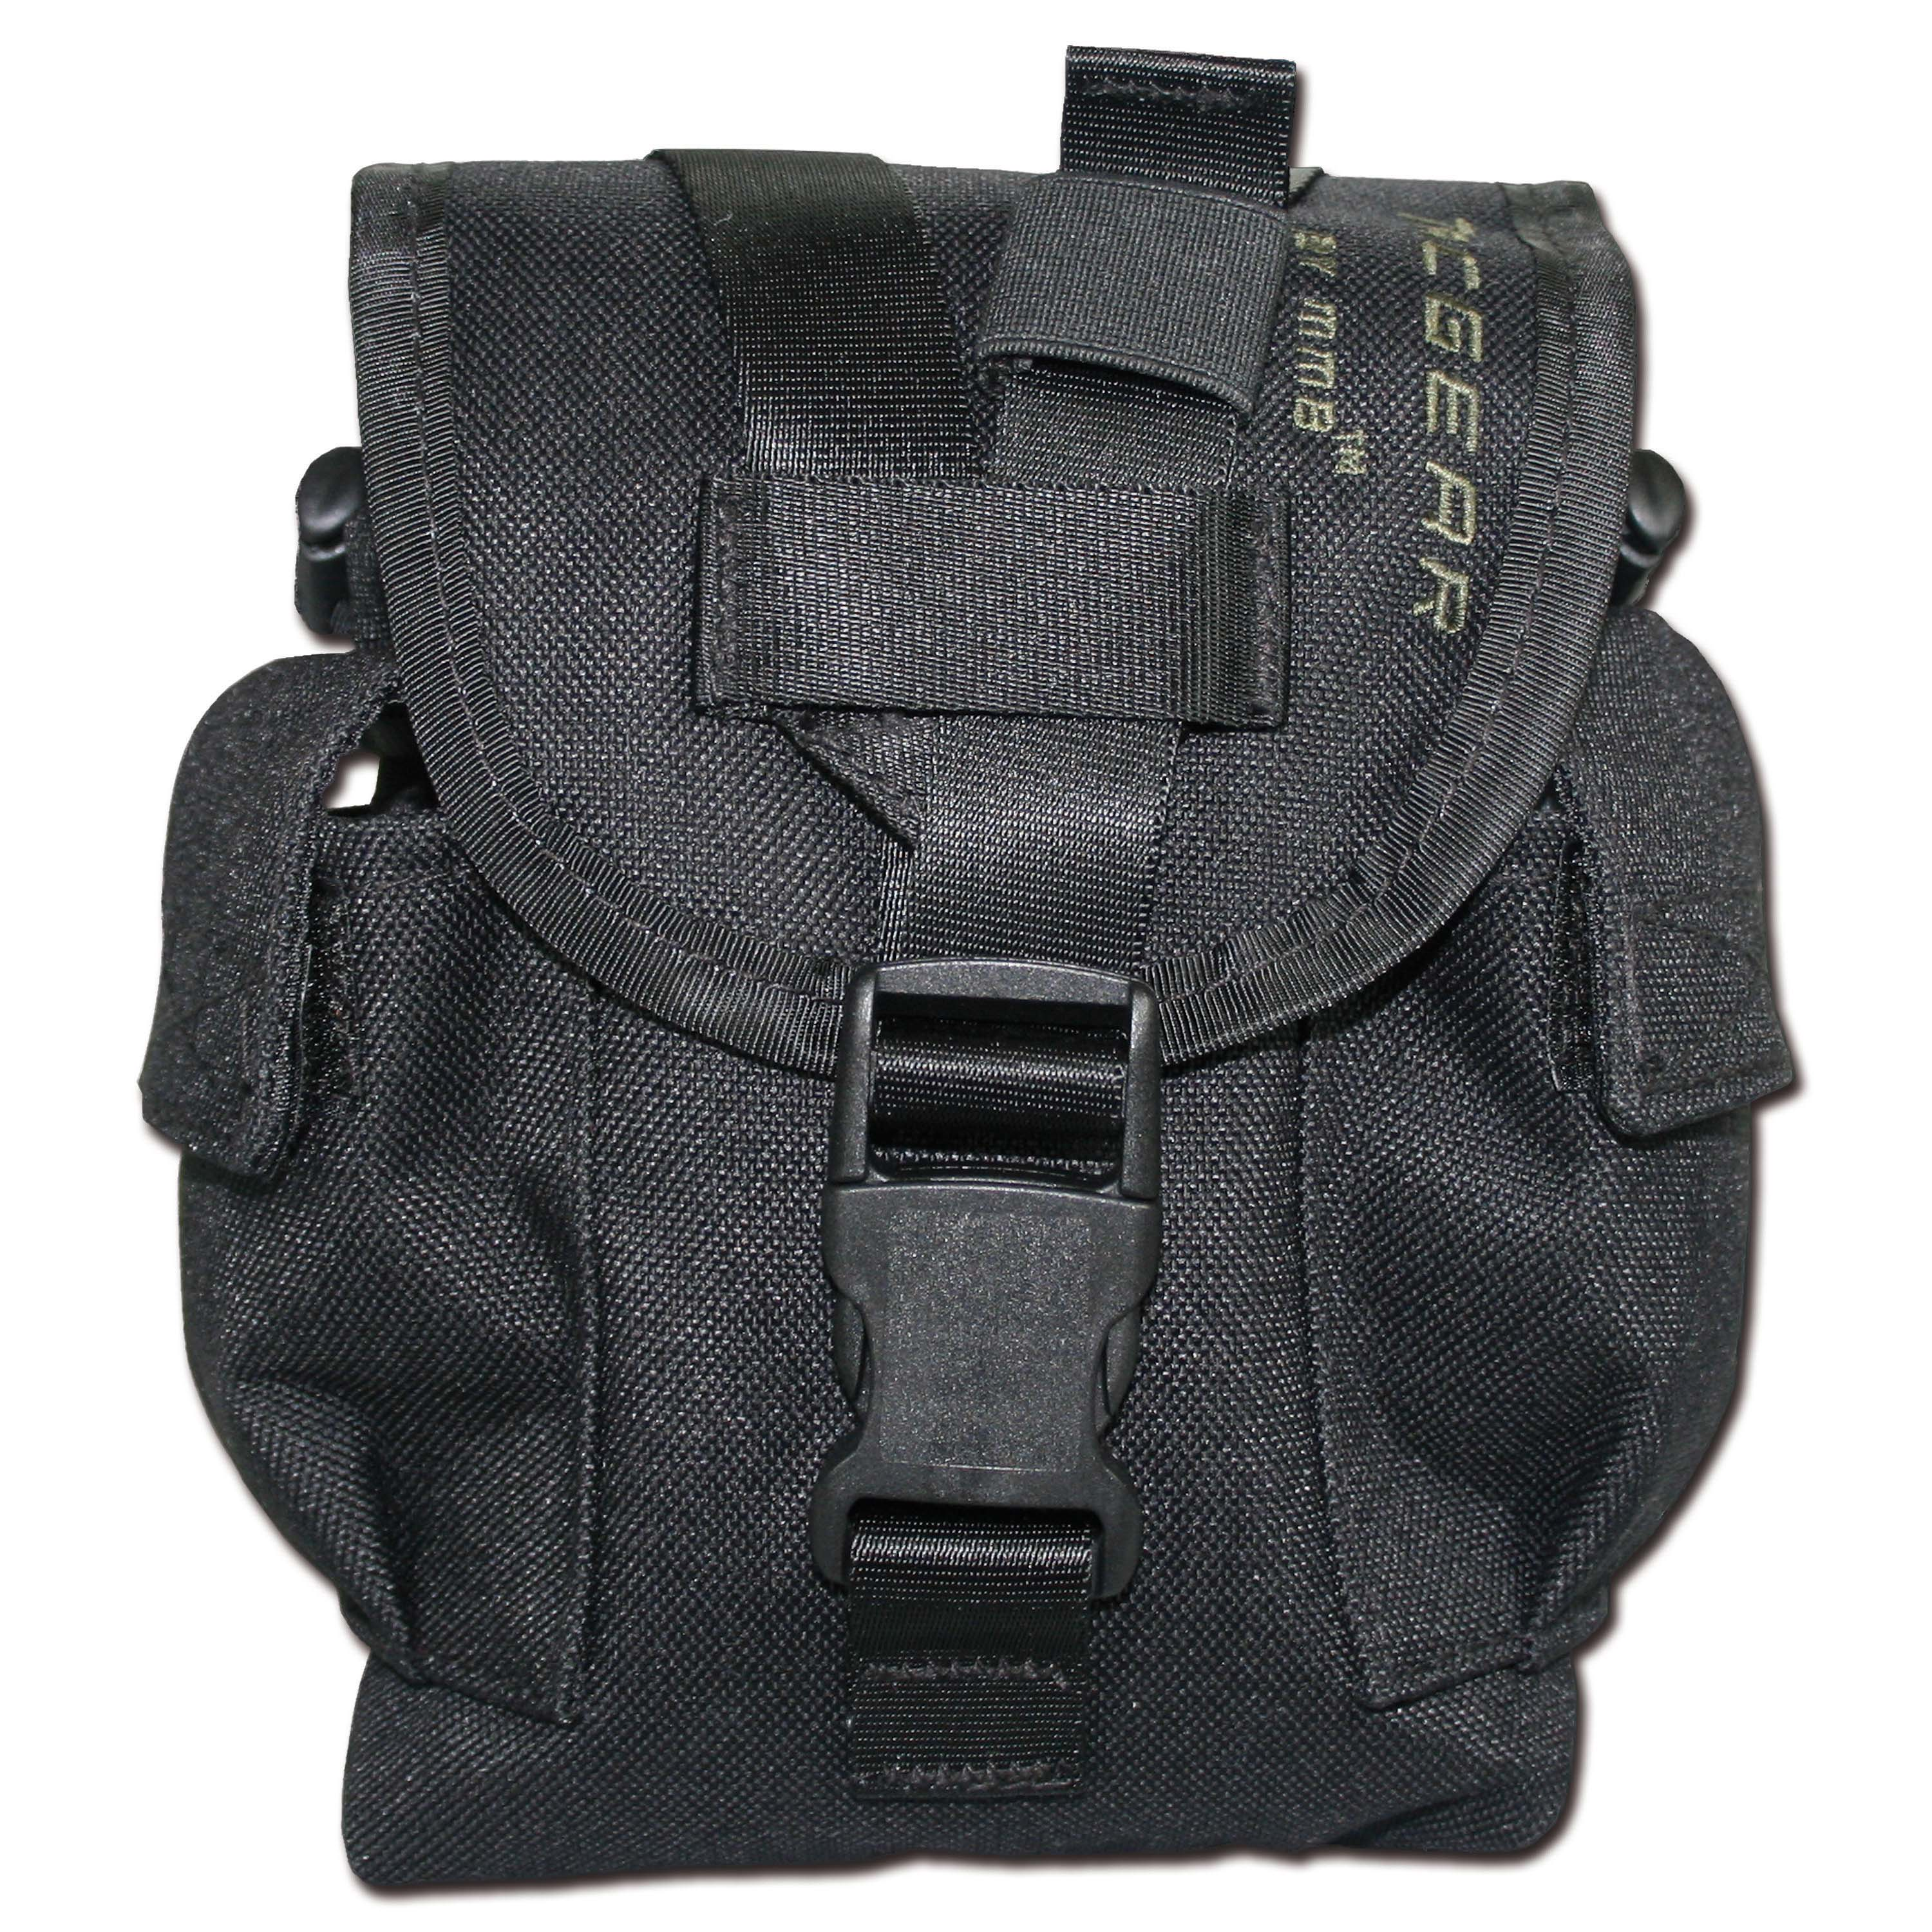 Utility Pouch TacGear black